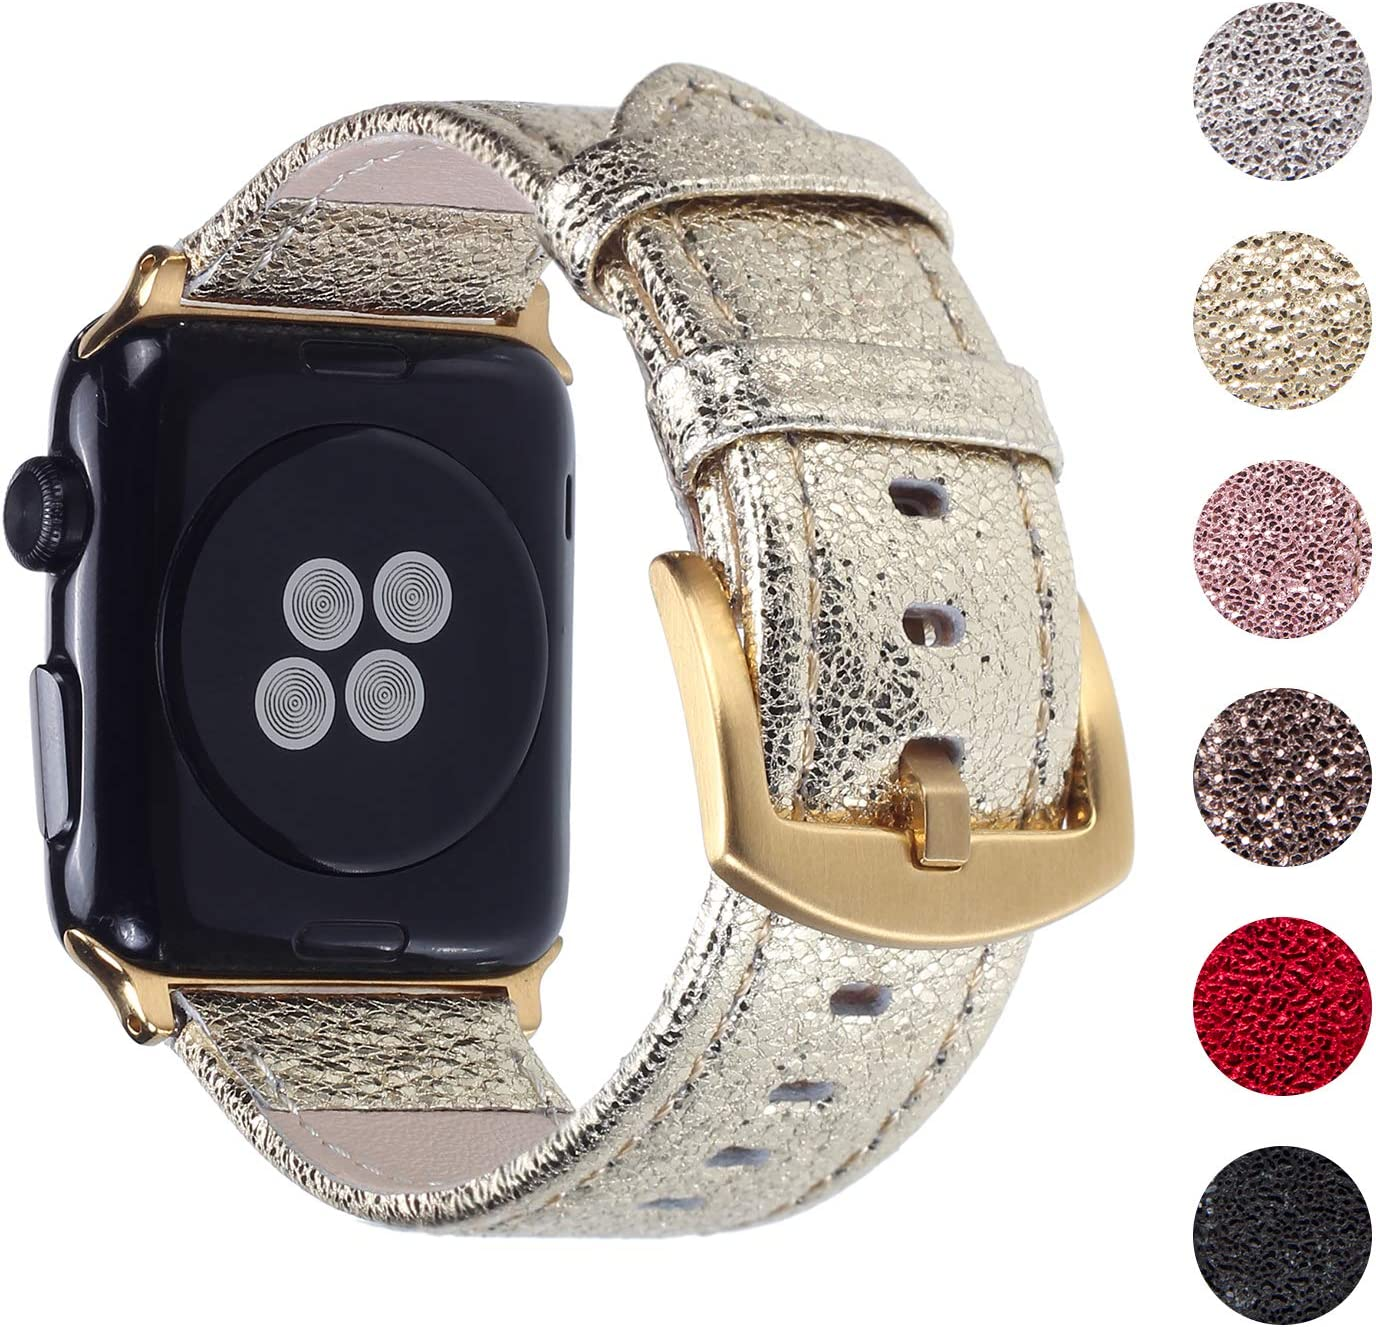 Pantheon Compatible Apple Watch Band 44mm / 42mm Shiny Leather Glitter Bands for Women - Series SE 6 5 4 3 2 1 - Shiny Gold